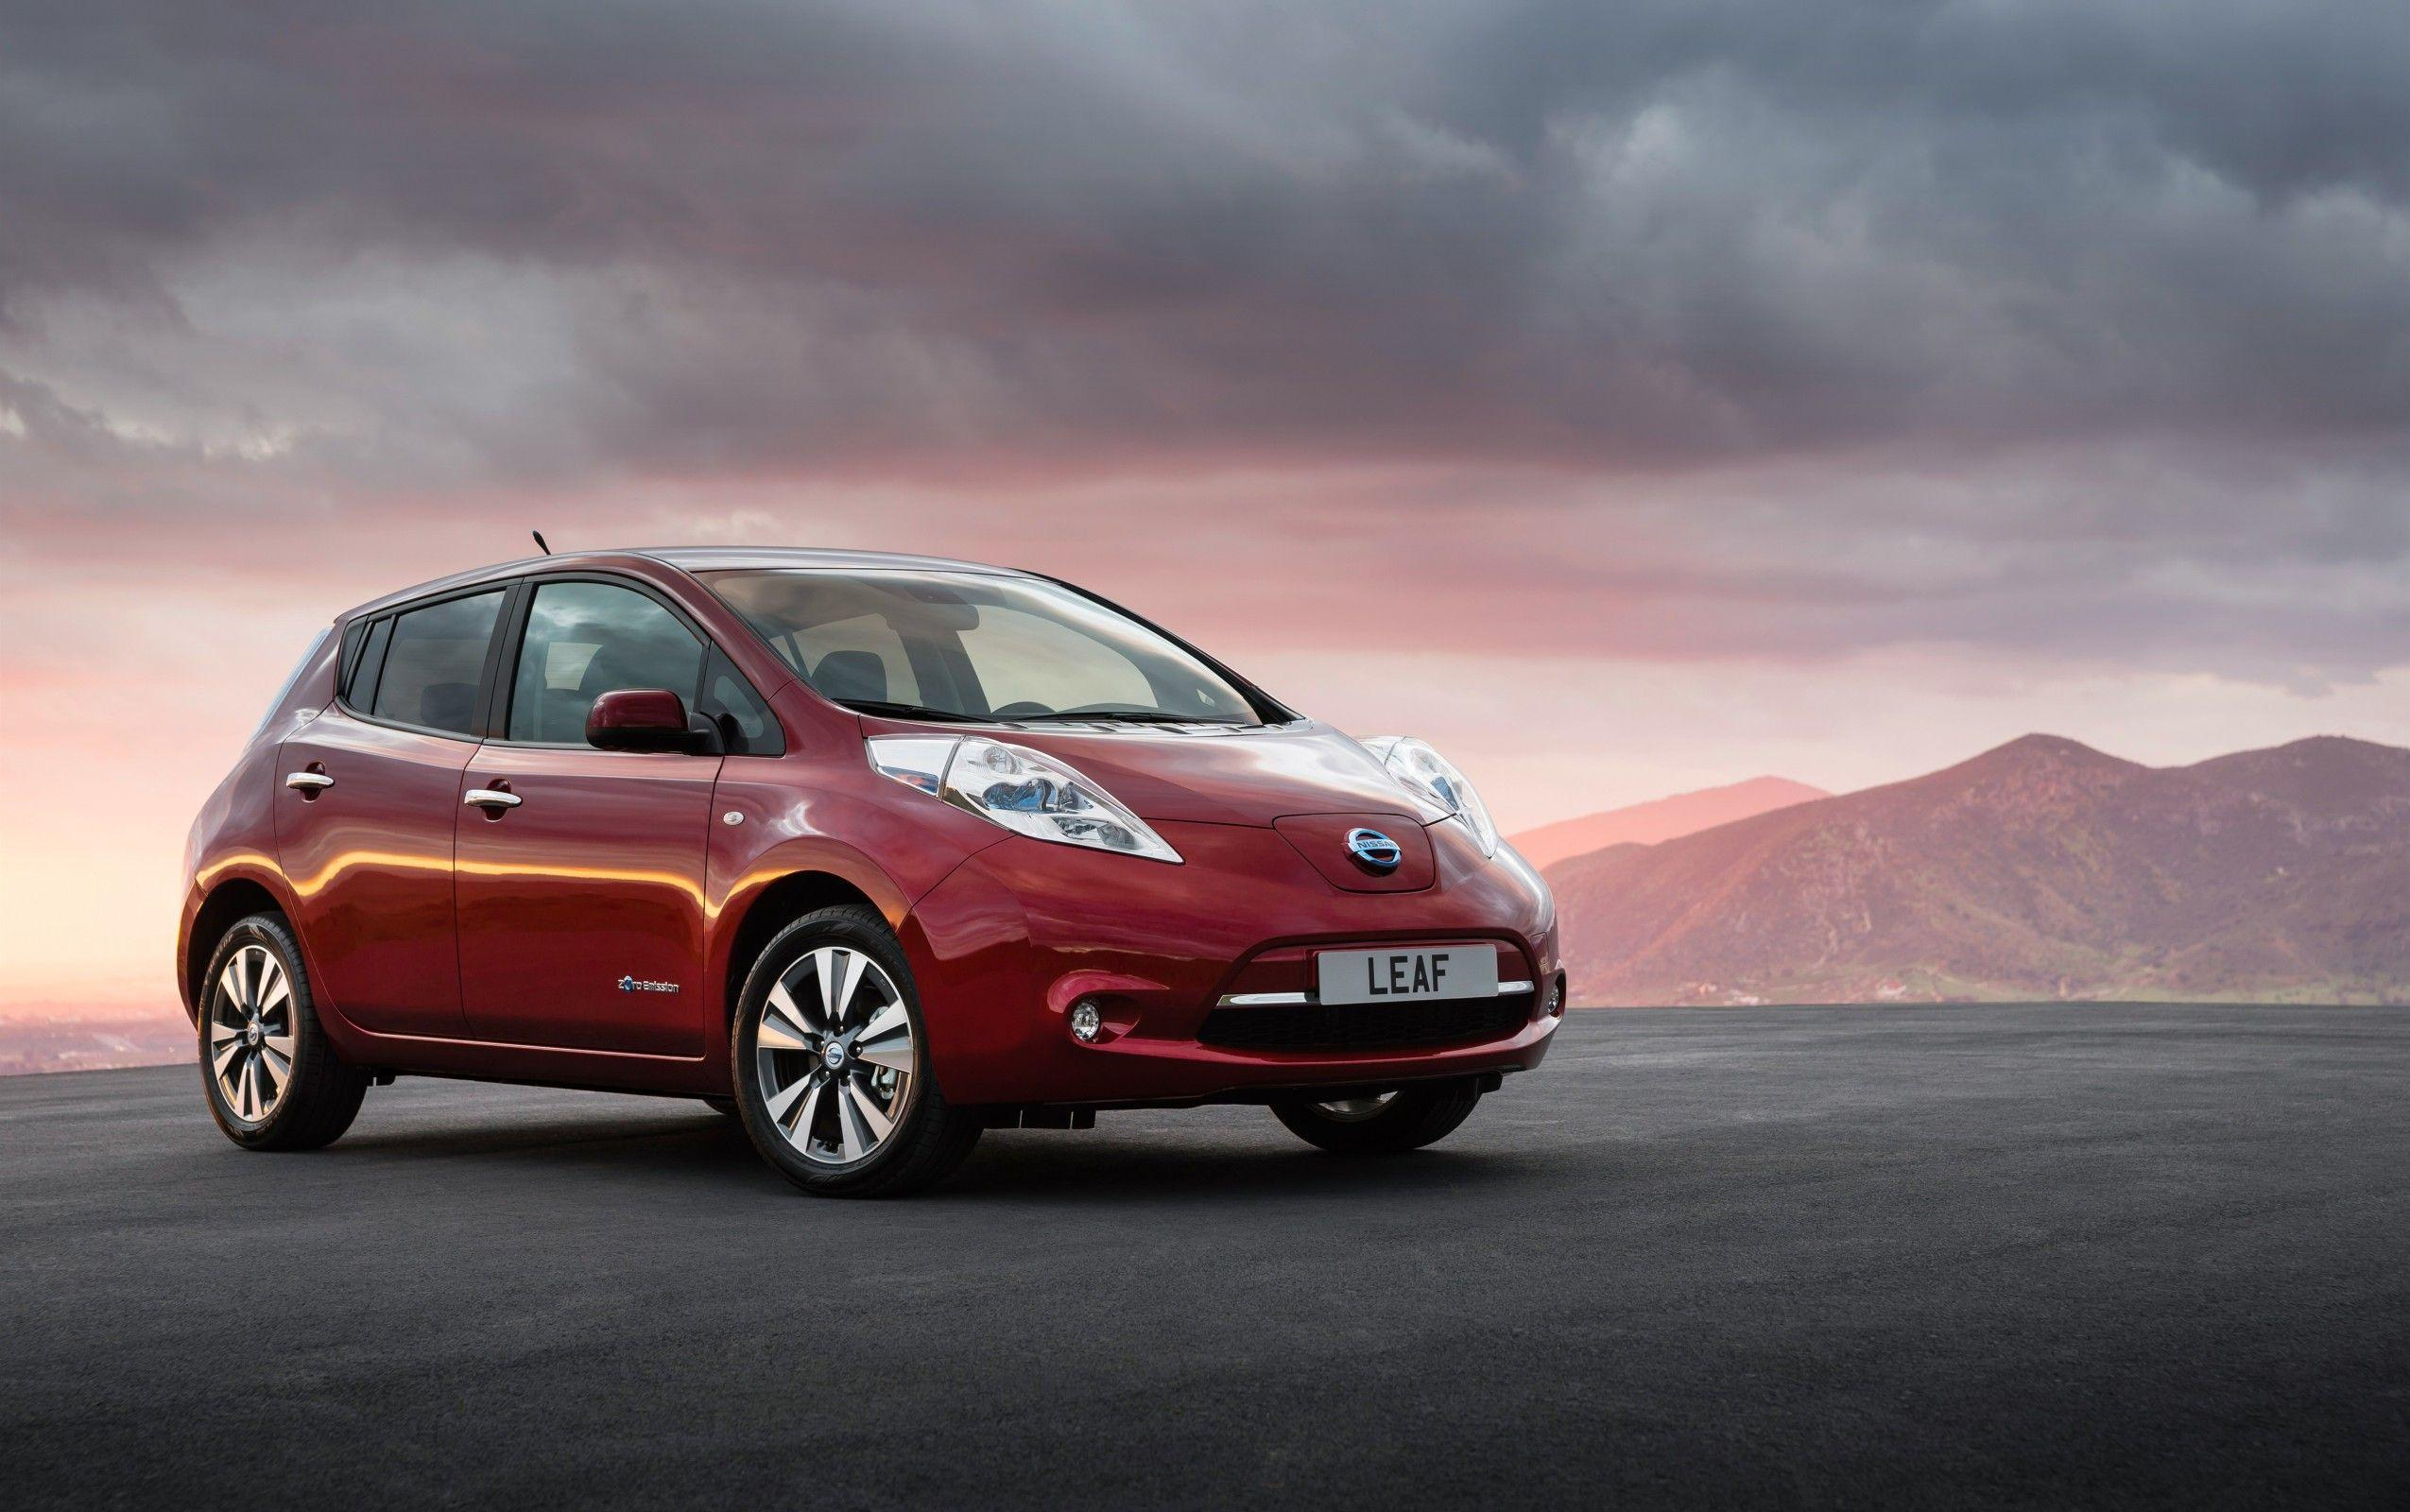 Nissan Leaf 2014 Wallpapers - 2550x1600 - 514161